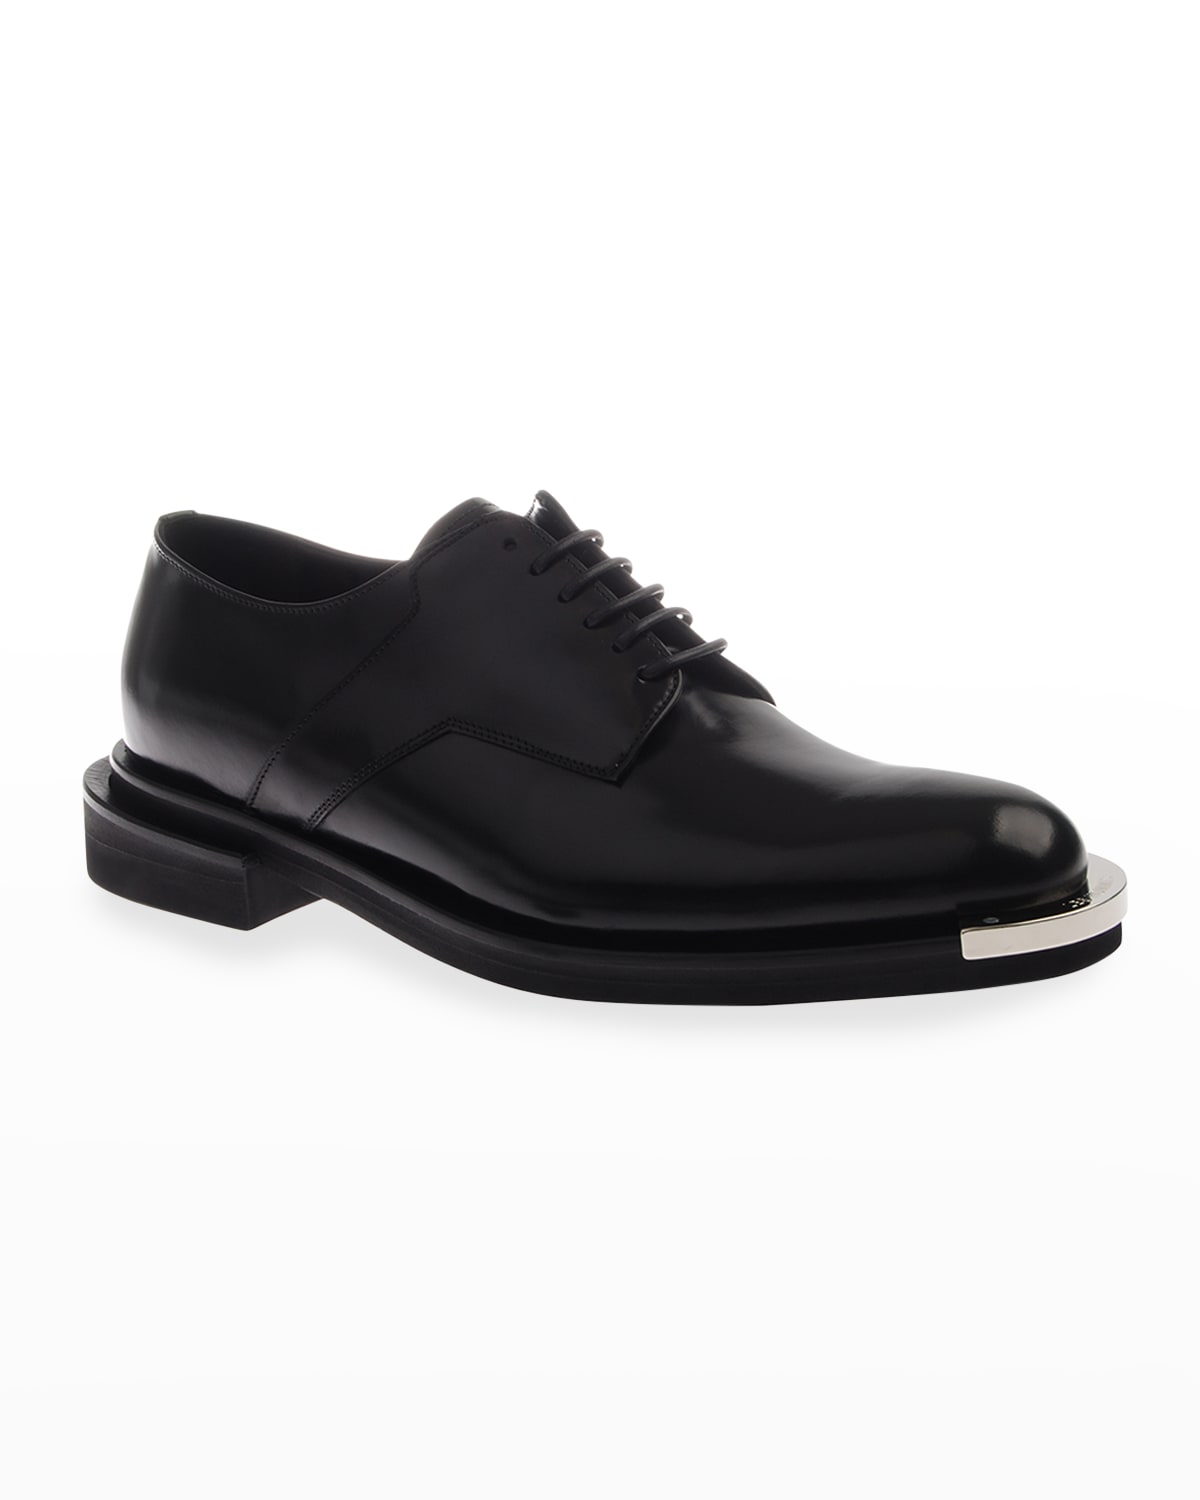 Men's Metal-Tip Leather Loafers